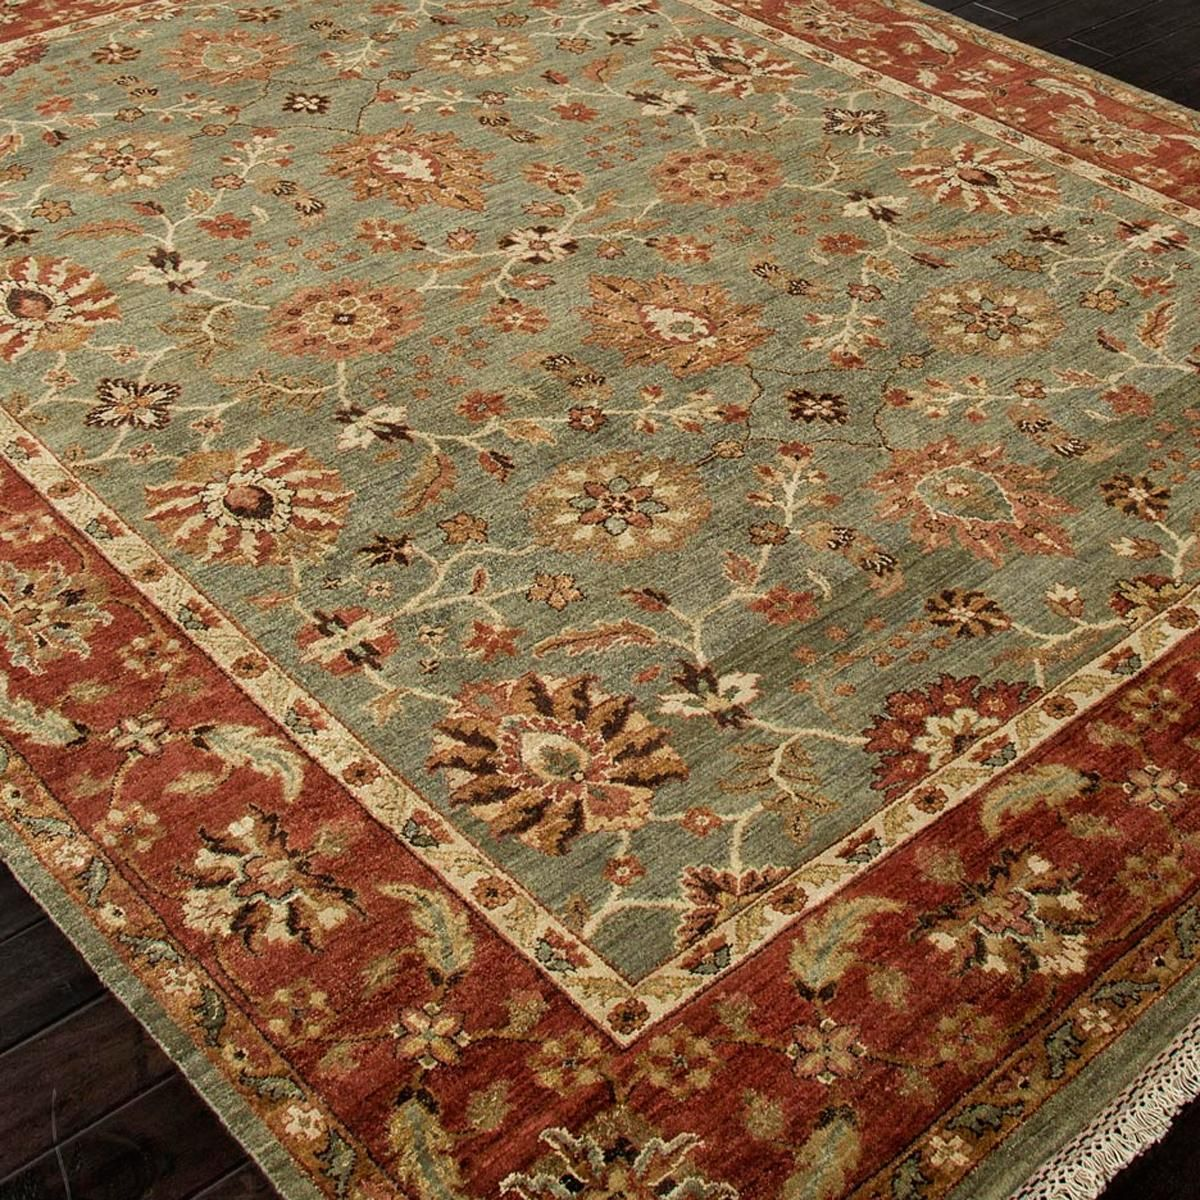 Handknot Antique Reproduction Traditional Wool Rug: 5 Colors